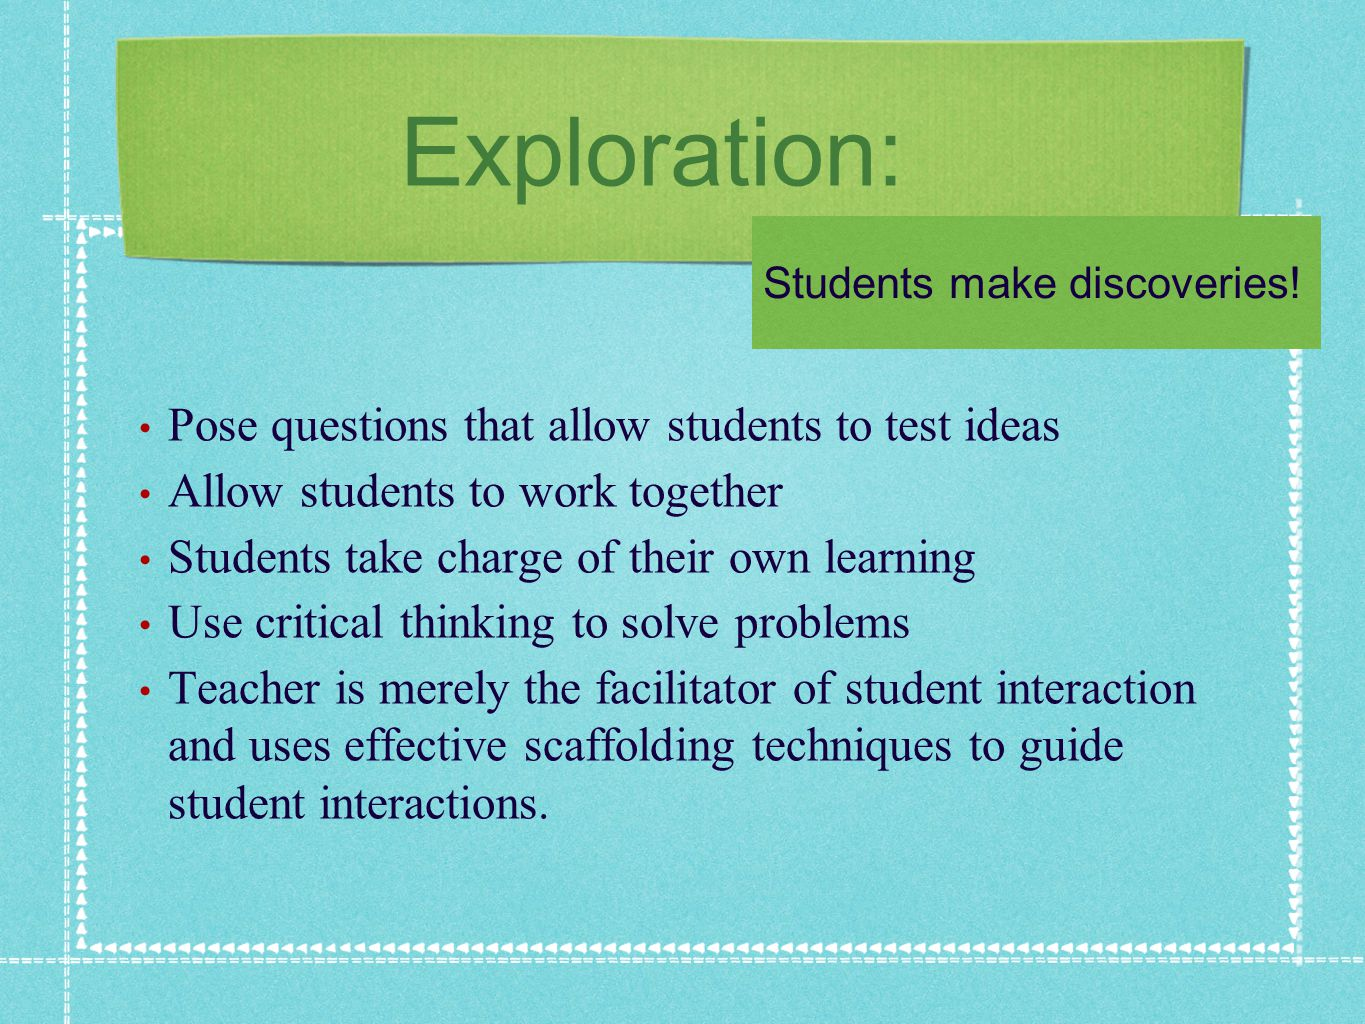 Exploration: Pose questions that allow students to test ideas Allow students to work together Students take charge of their own learning Use critical thinking to solve problems Teacher is merely the facilitator of student interaction and uses effective scaffolding techniques to guide student interactions.